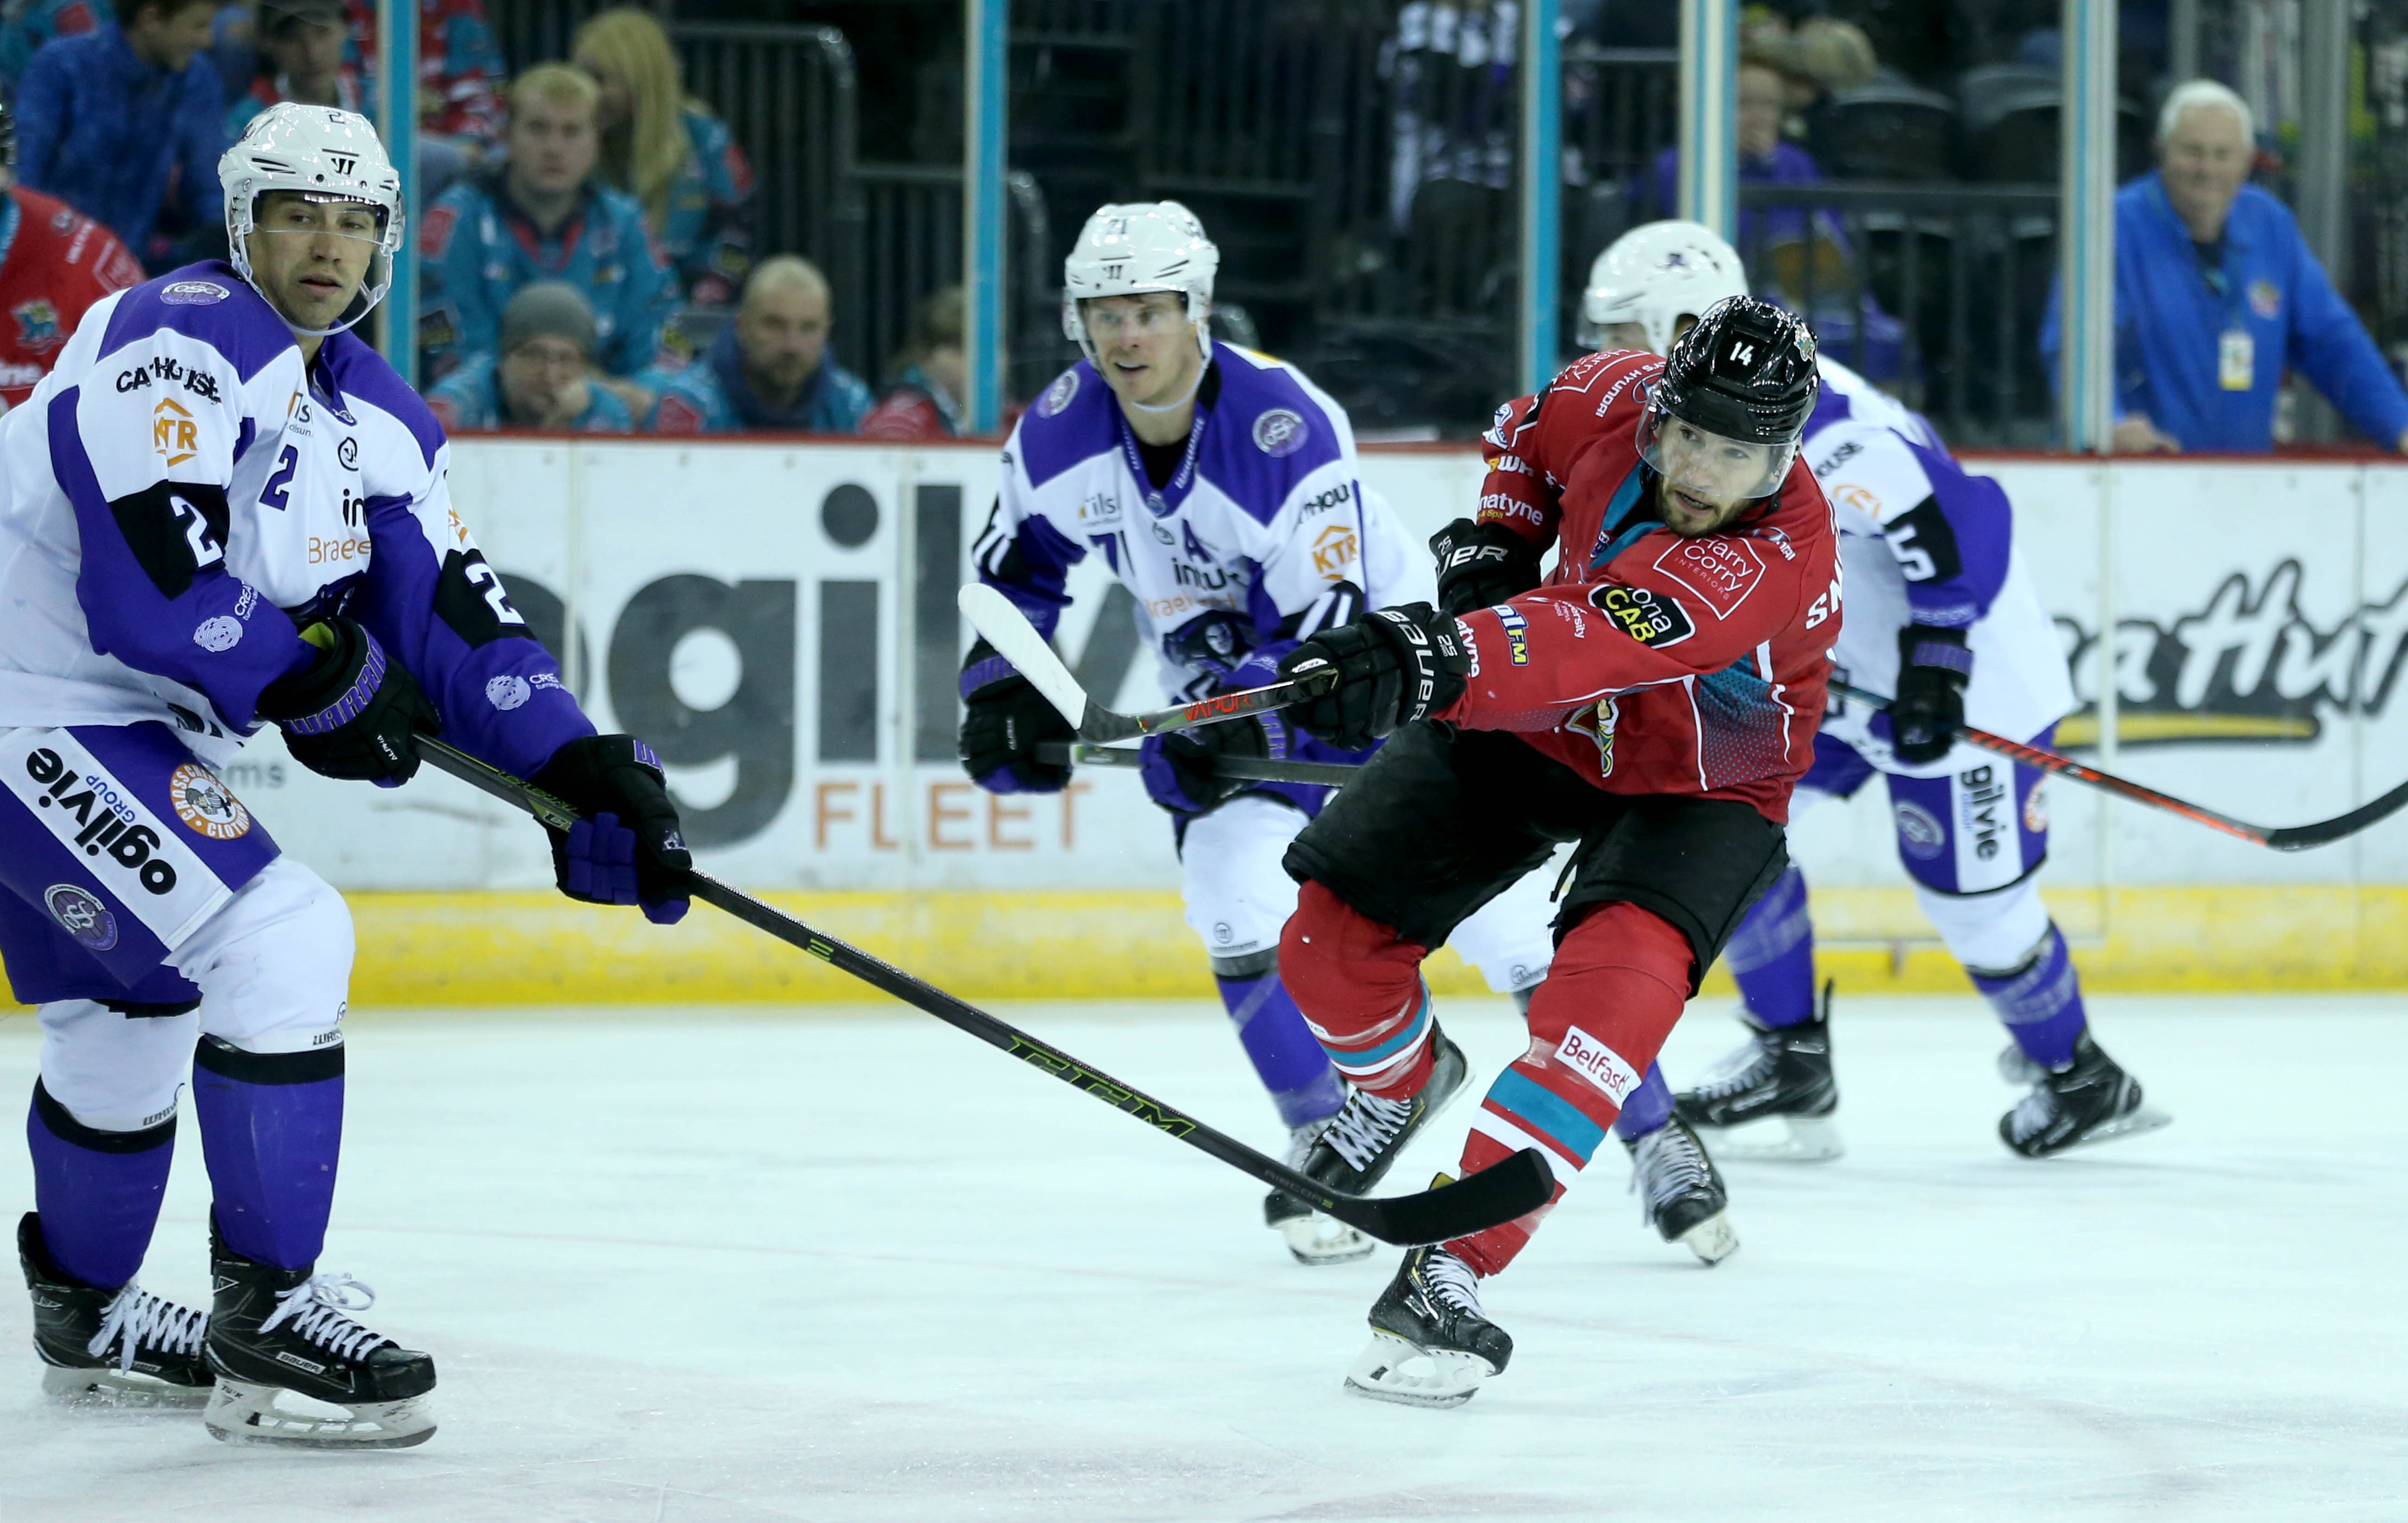 Giants Vs Clan_030